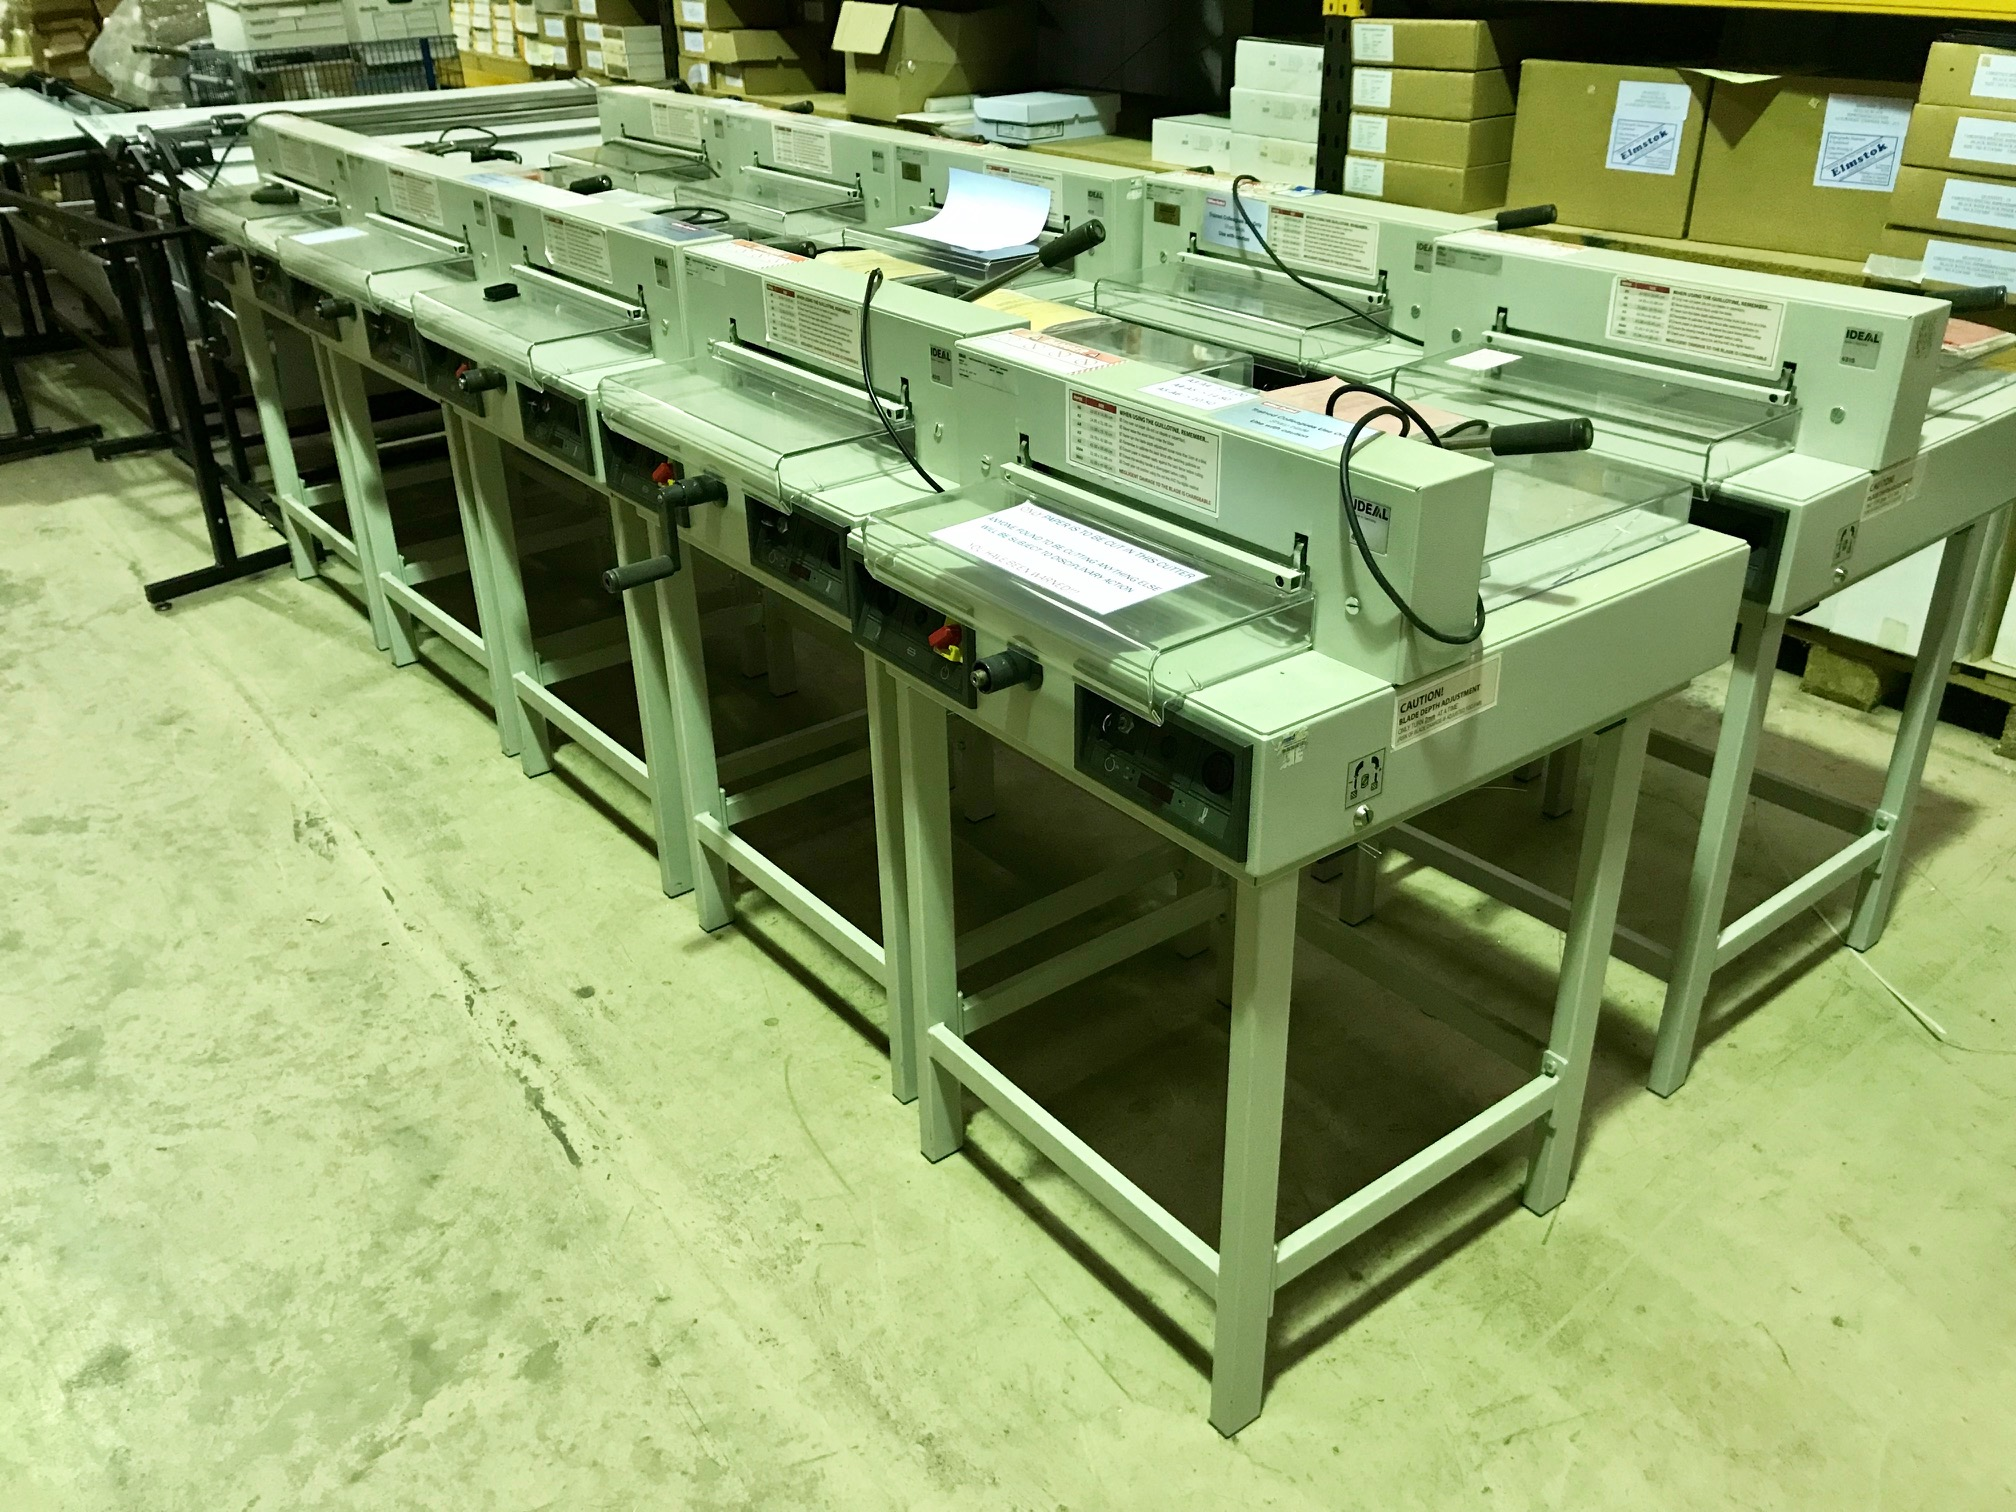 IDEAL 4315 Guillotines Now Available At Low Prices - Recovered From Ex-Stationery Chain